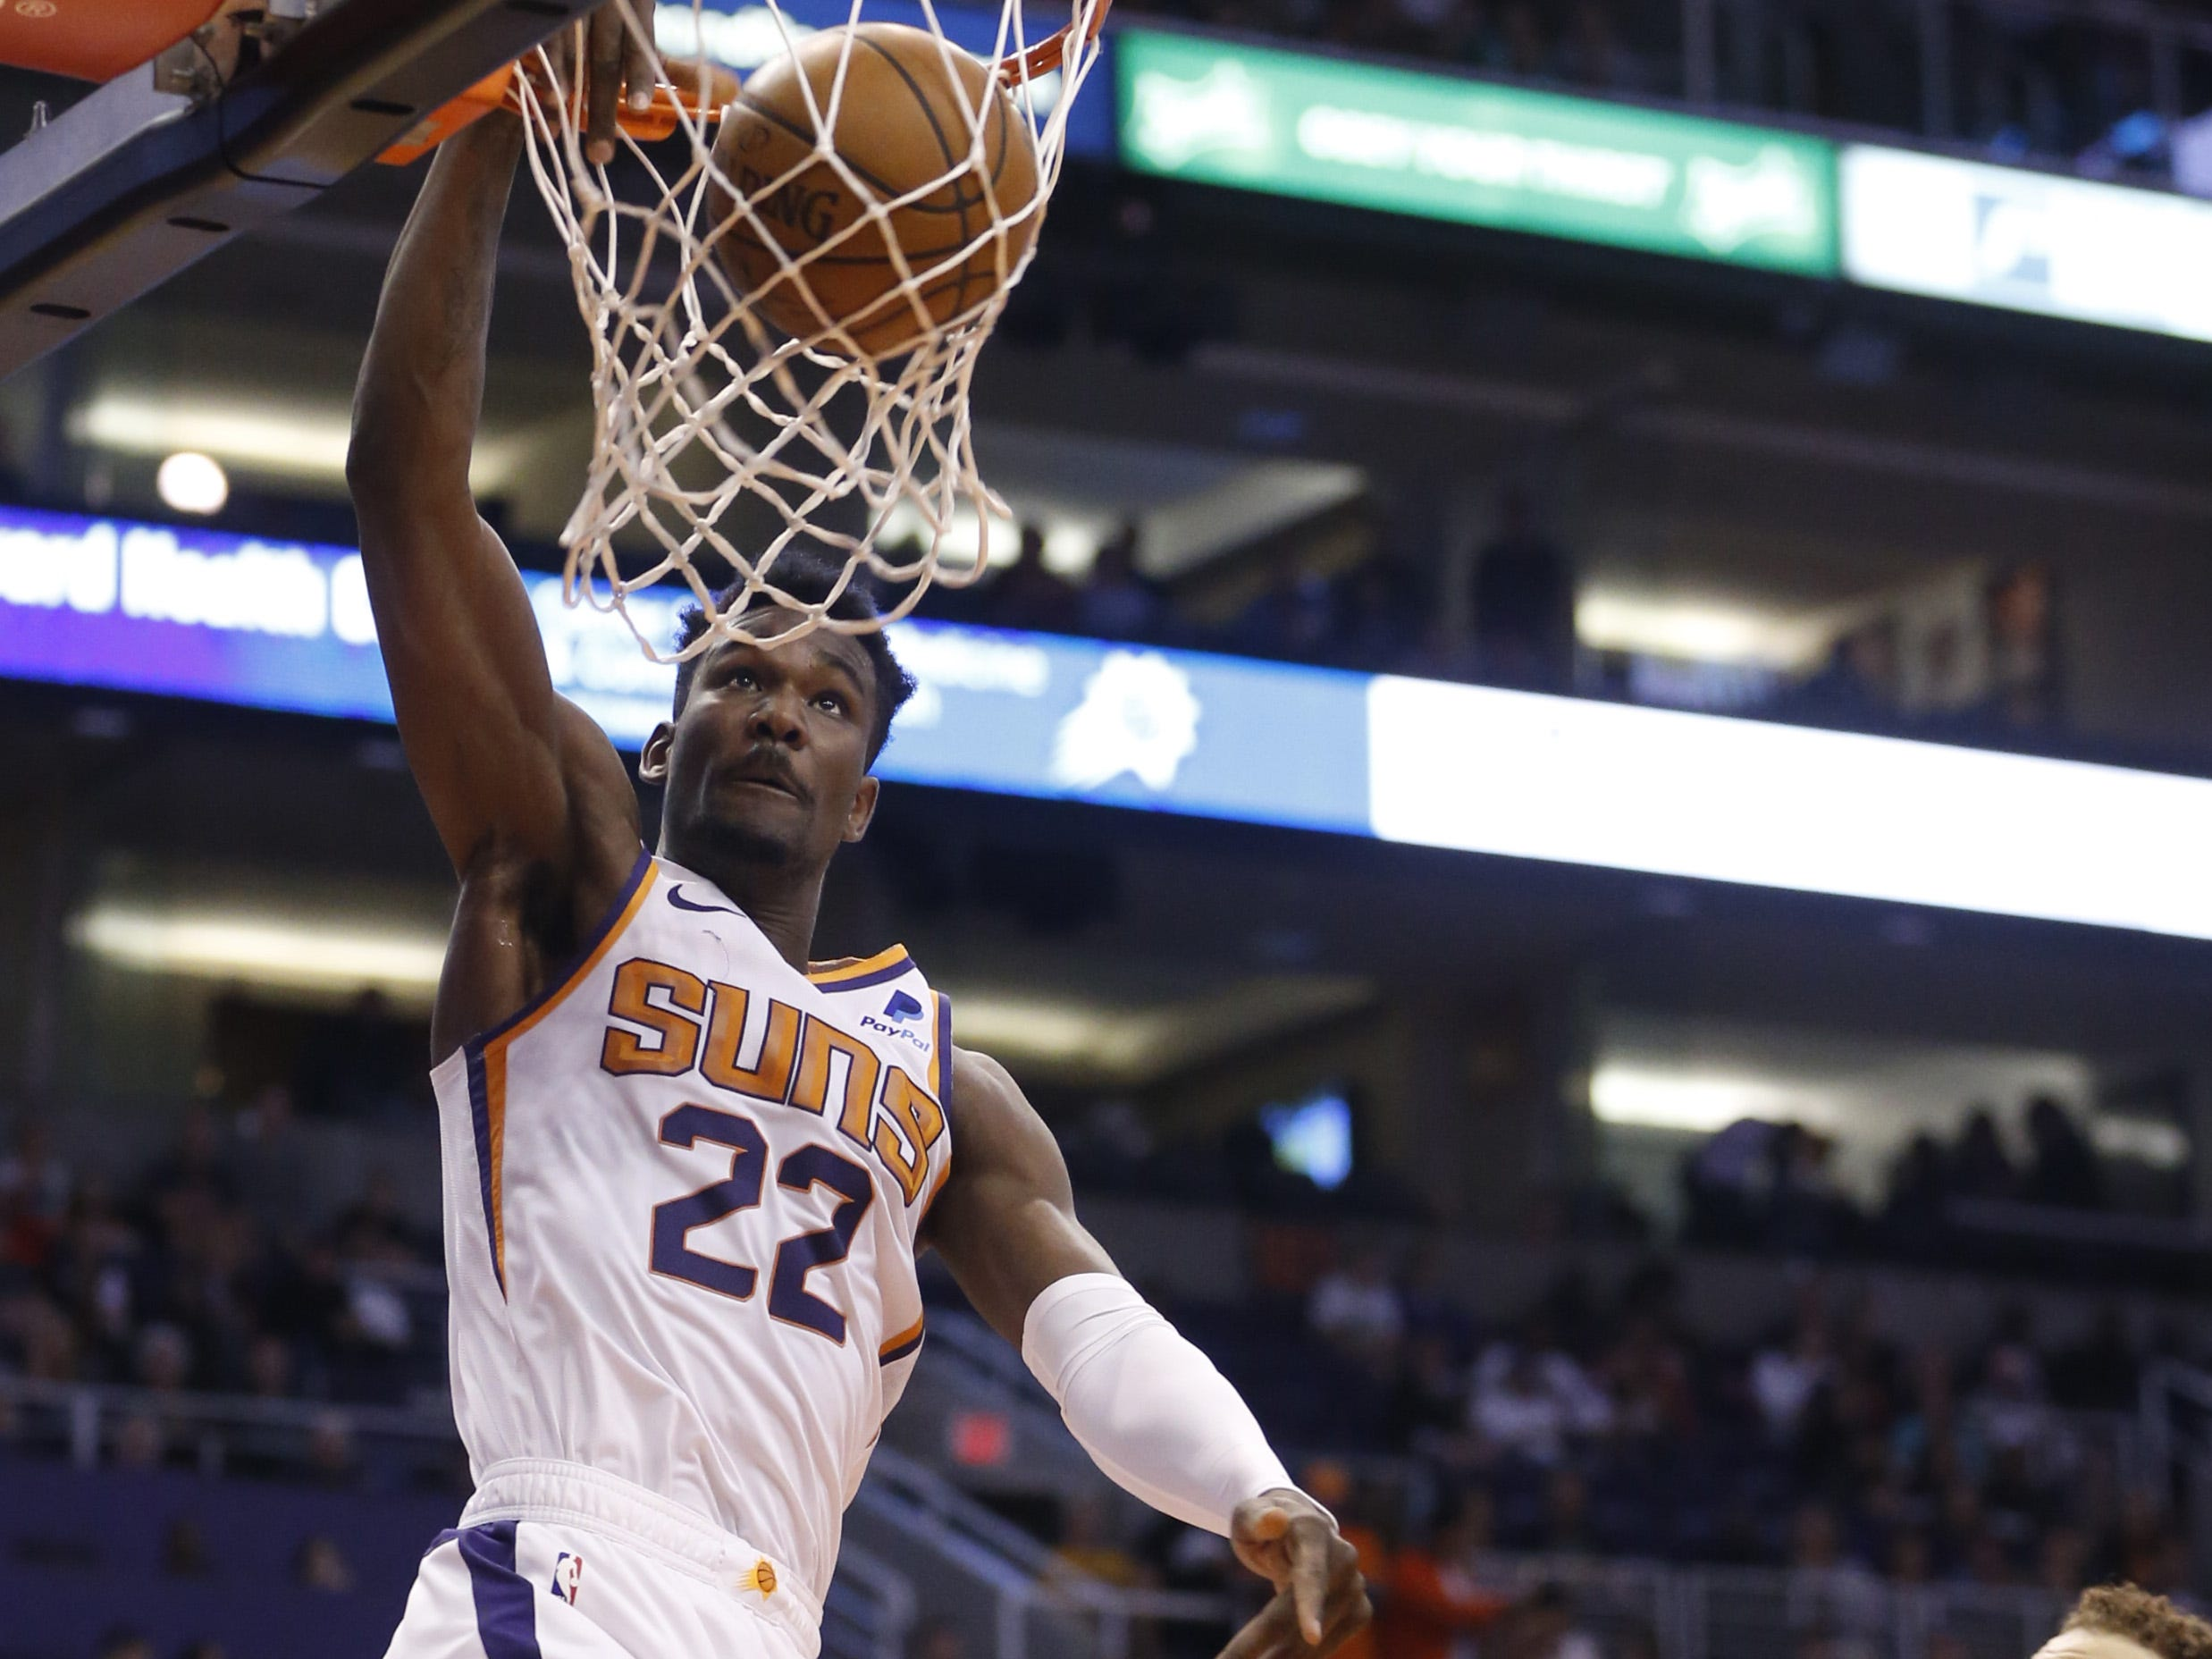 Suns' Deandre Ayton (22) dunks against the Pistons' Blake Griffin (23) during the first half at the Talking Stick Resort Arena in Phoenix, Ariz. on March 21, 2019.